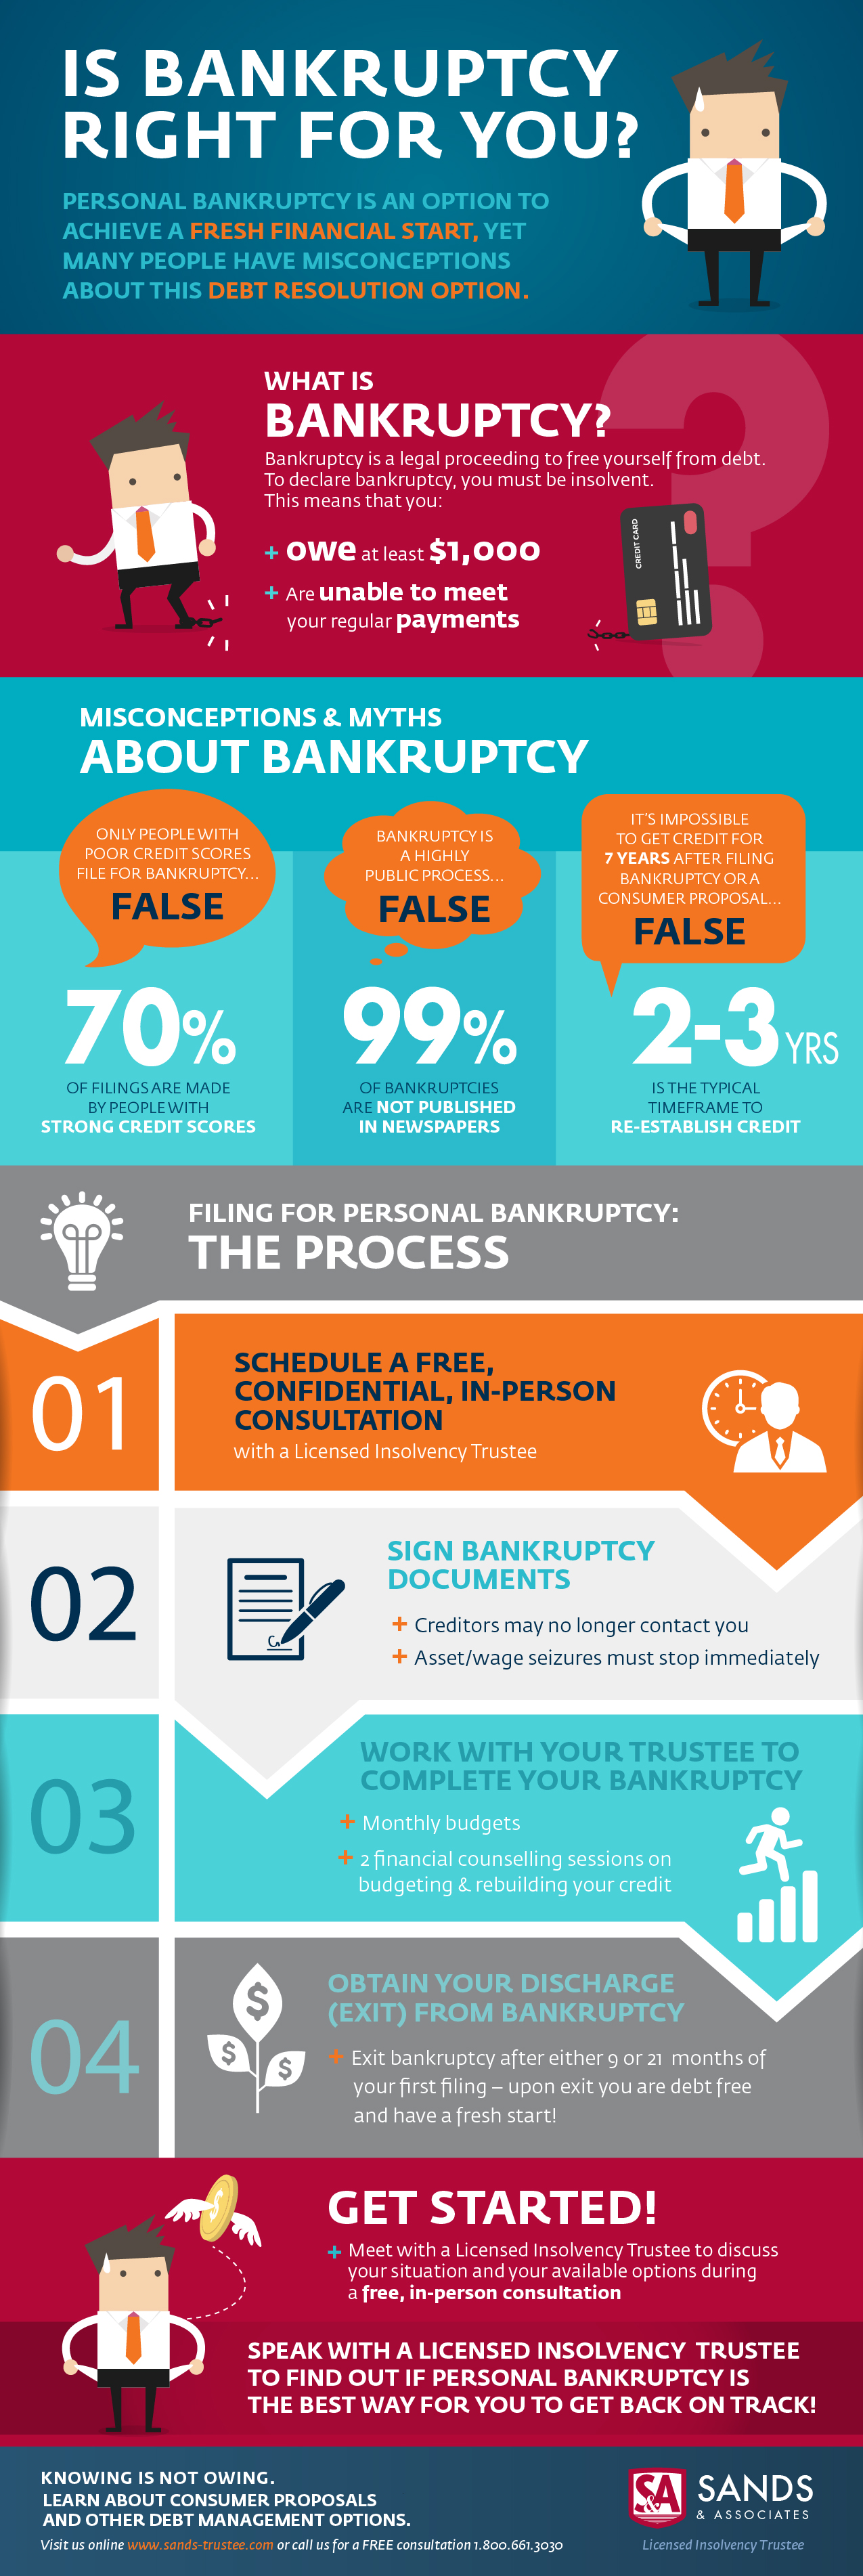 Personal Bankruptcy in BC Infographic